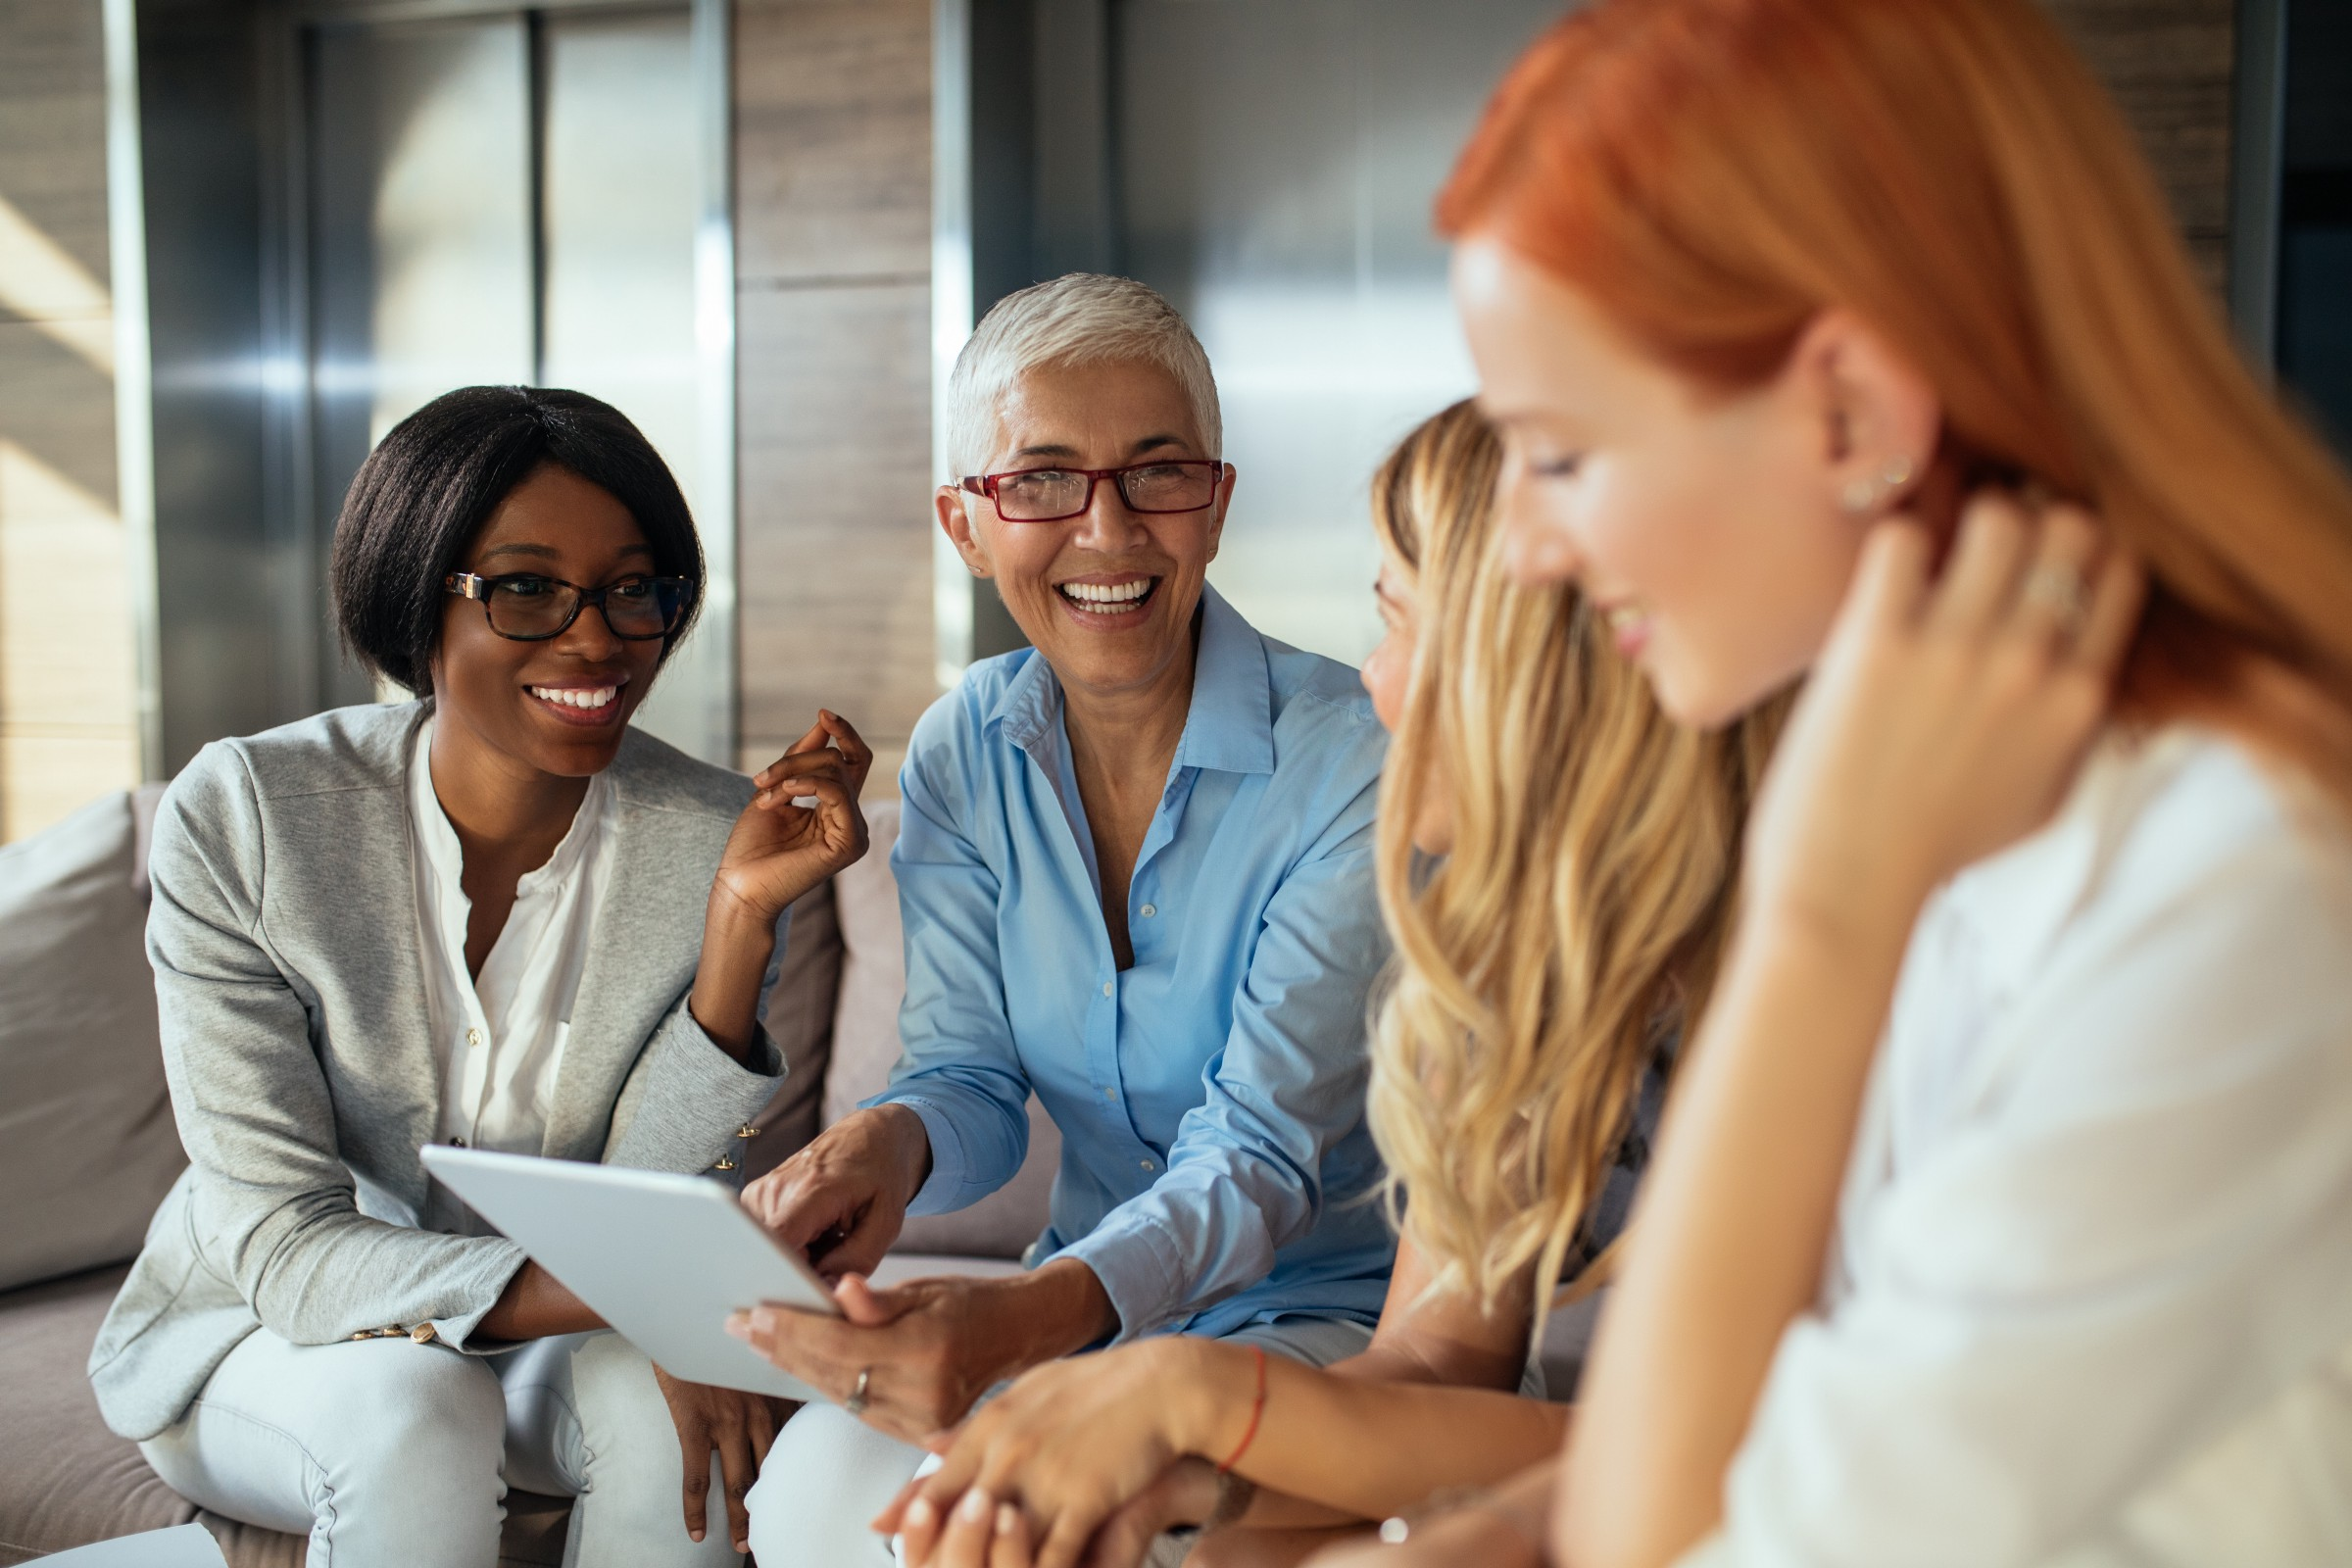 Baby Boomers Working with Millennials: The Value of ...